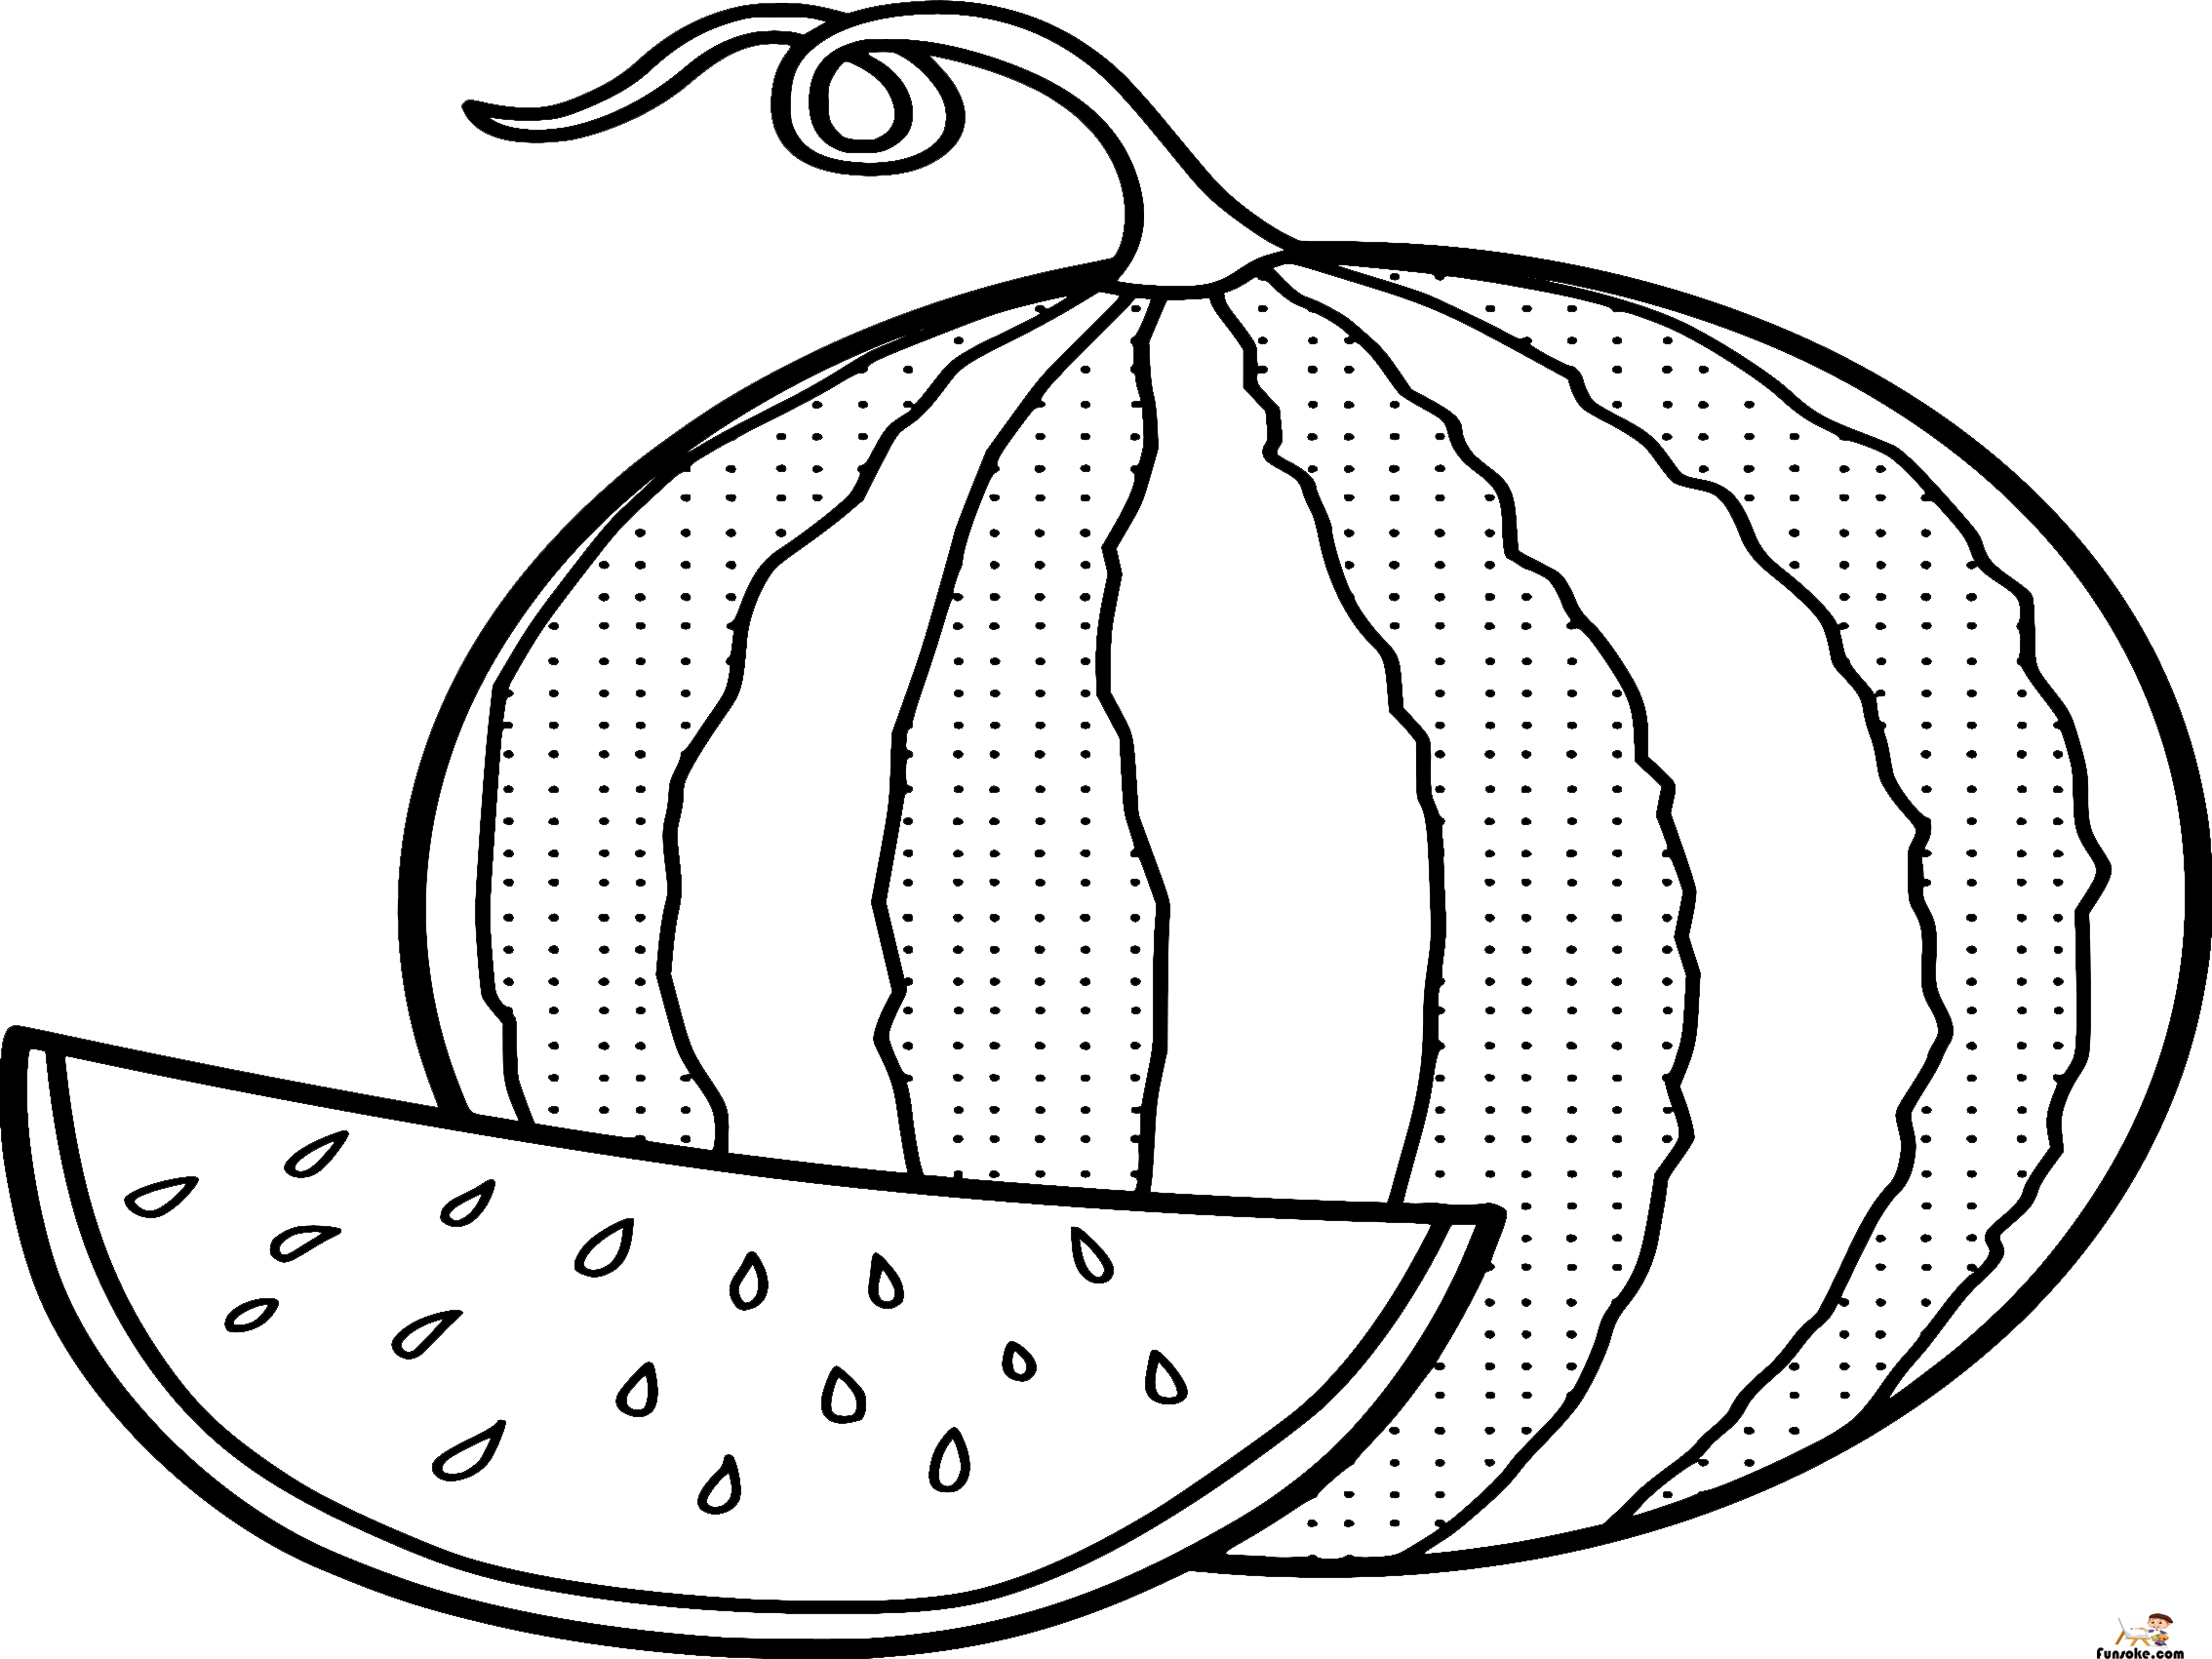 watermelon coloring images watermelon coloring pages preschoolers funsoke images watermelon coloring